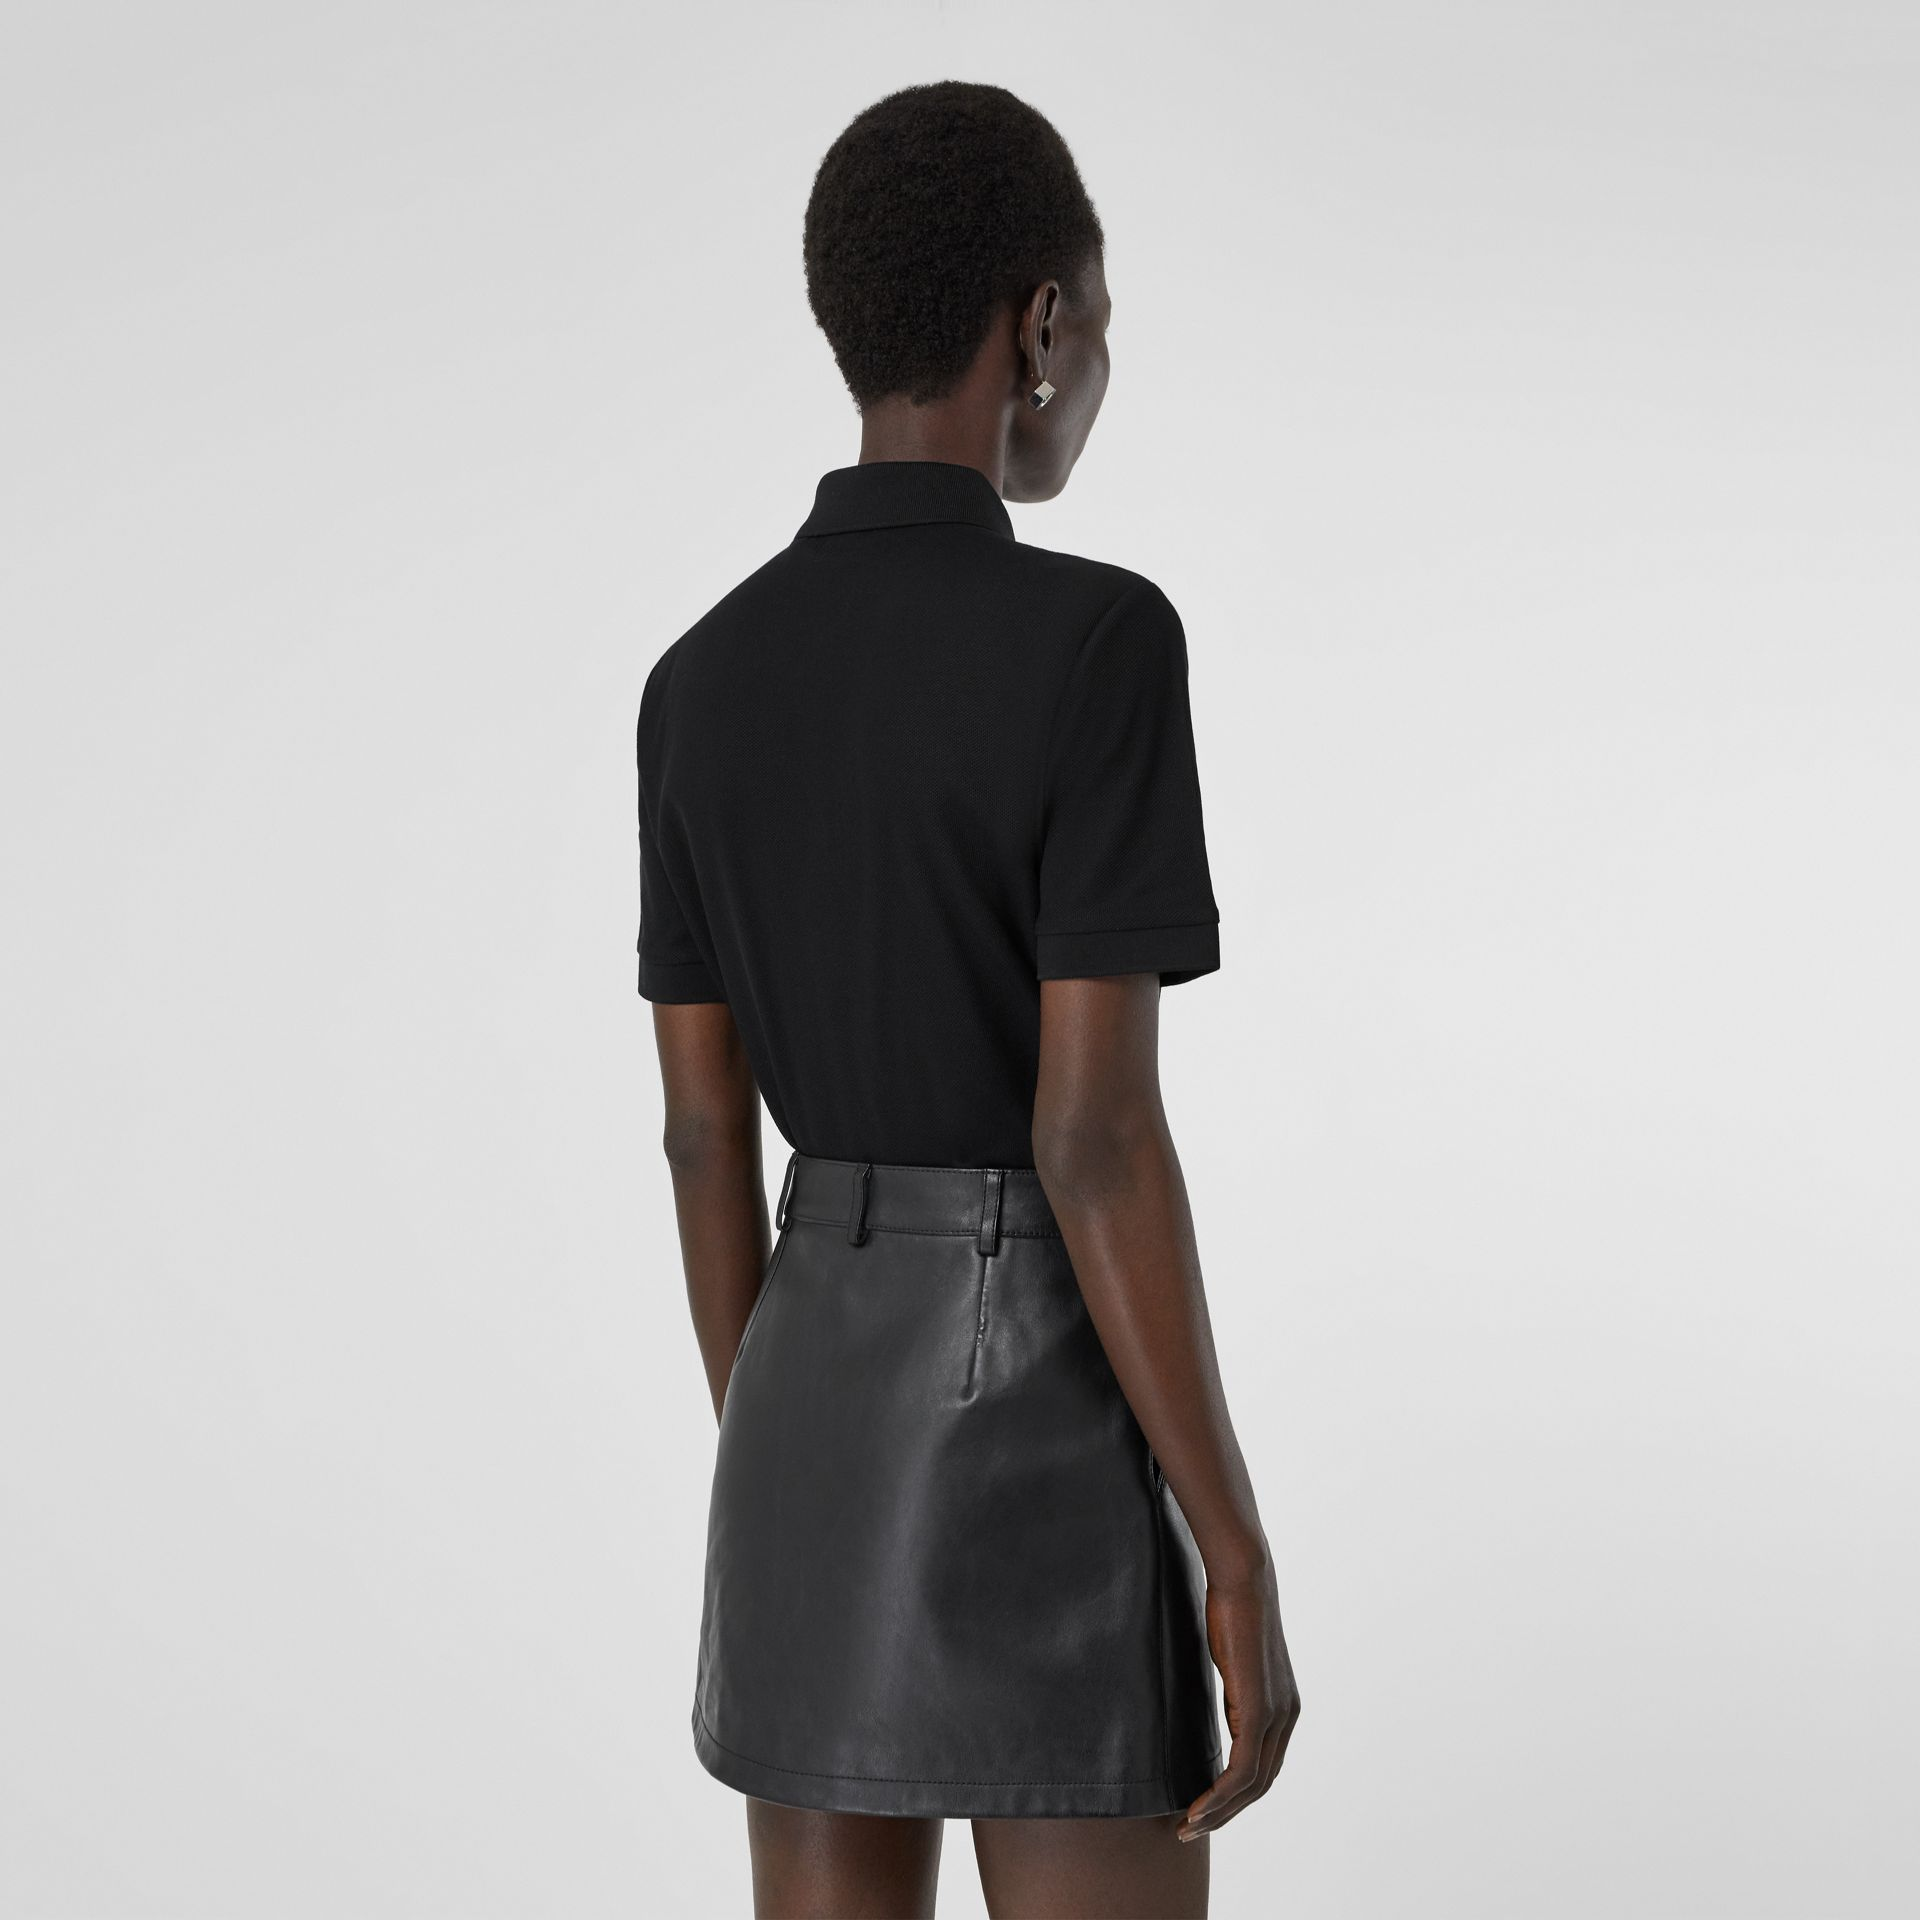 Monogram Motif Cotton Piqué Polo Shirt in Black - Women | Burberry Hong Kong S.A.R - gallery image 2